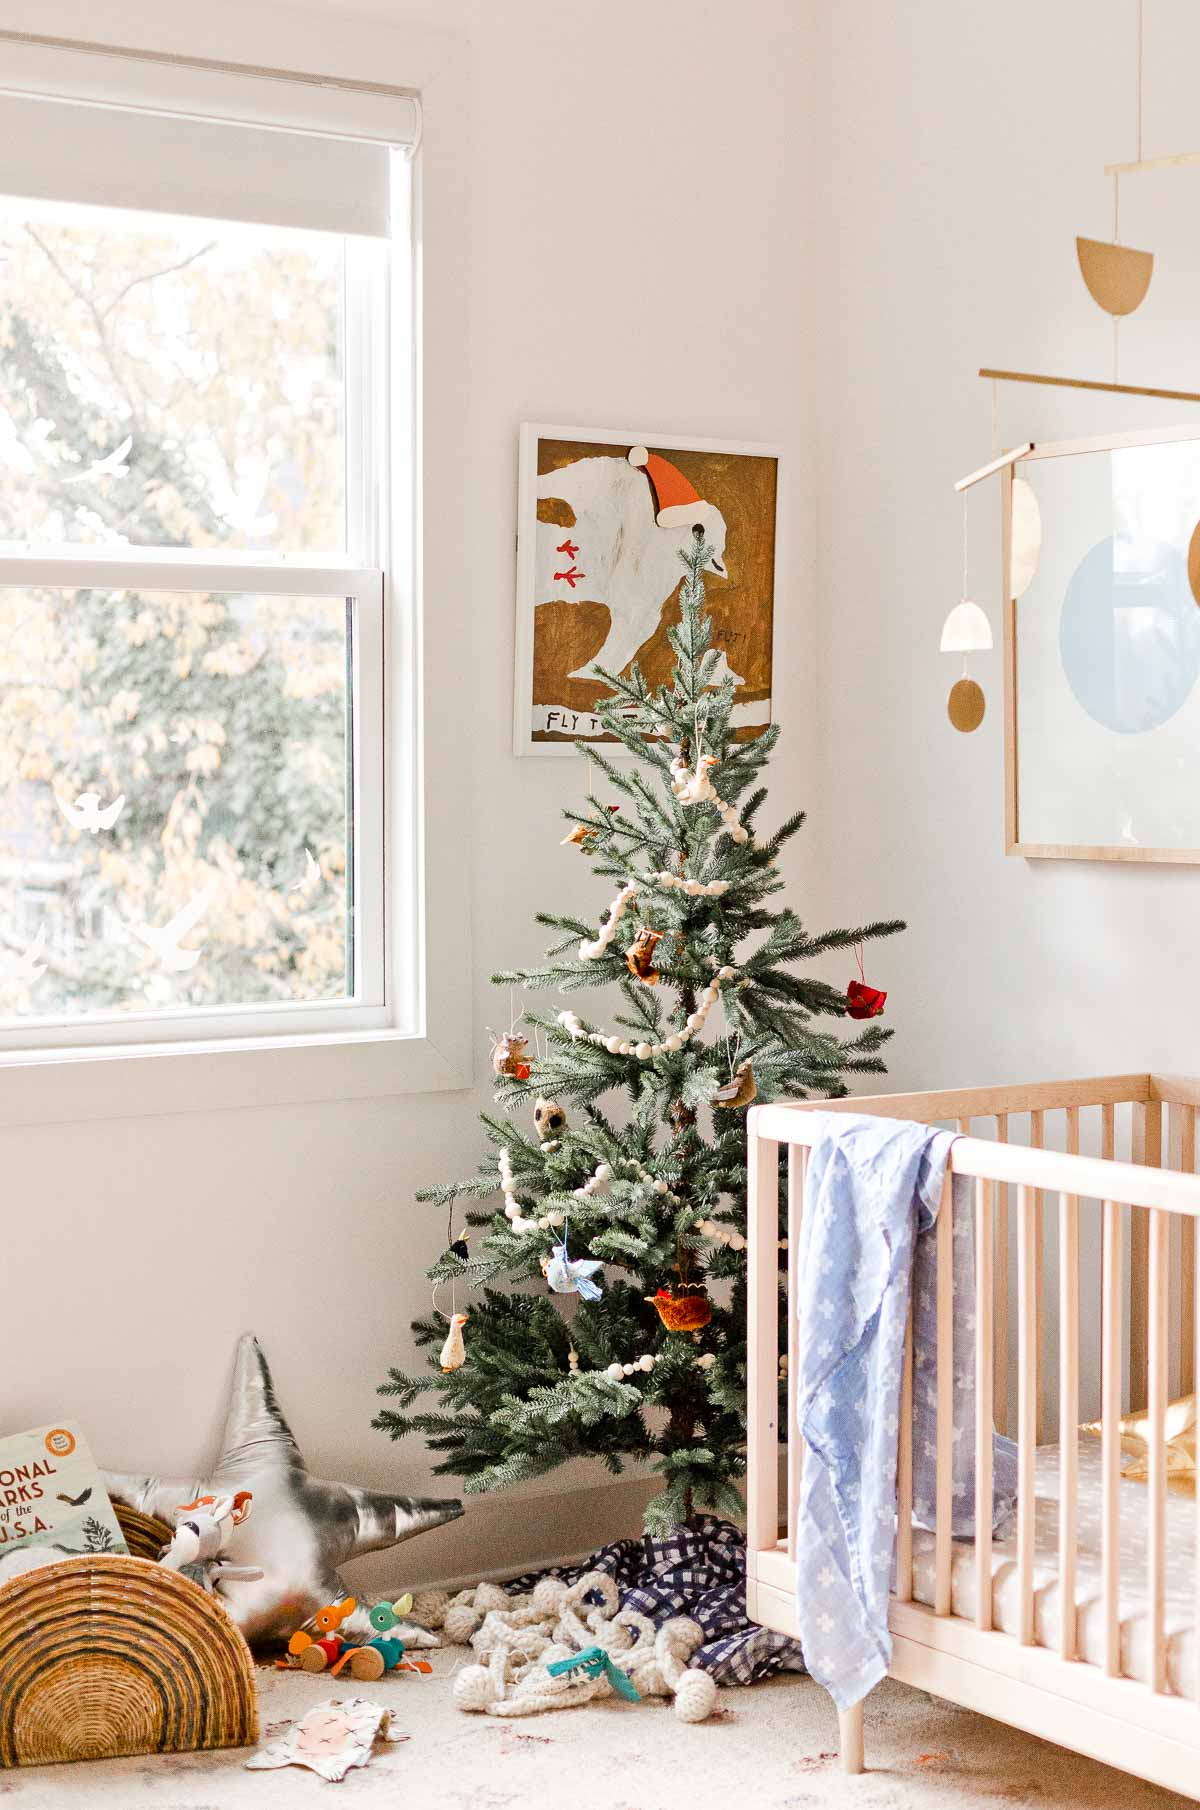 I like the simplicity of this holiday inspiration - a simple Christmas tree in a kid's room or nursery, mixed with metallic star pillows and Santa hats on the artwork.